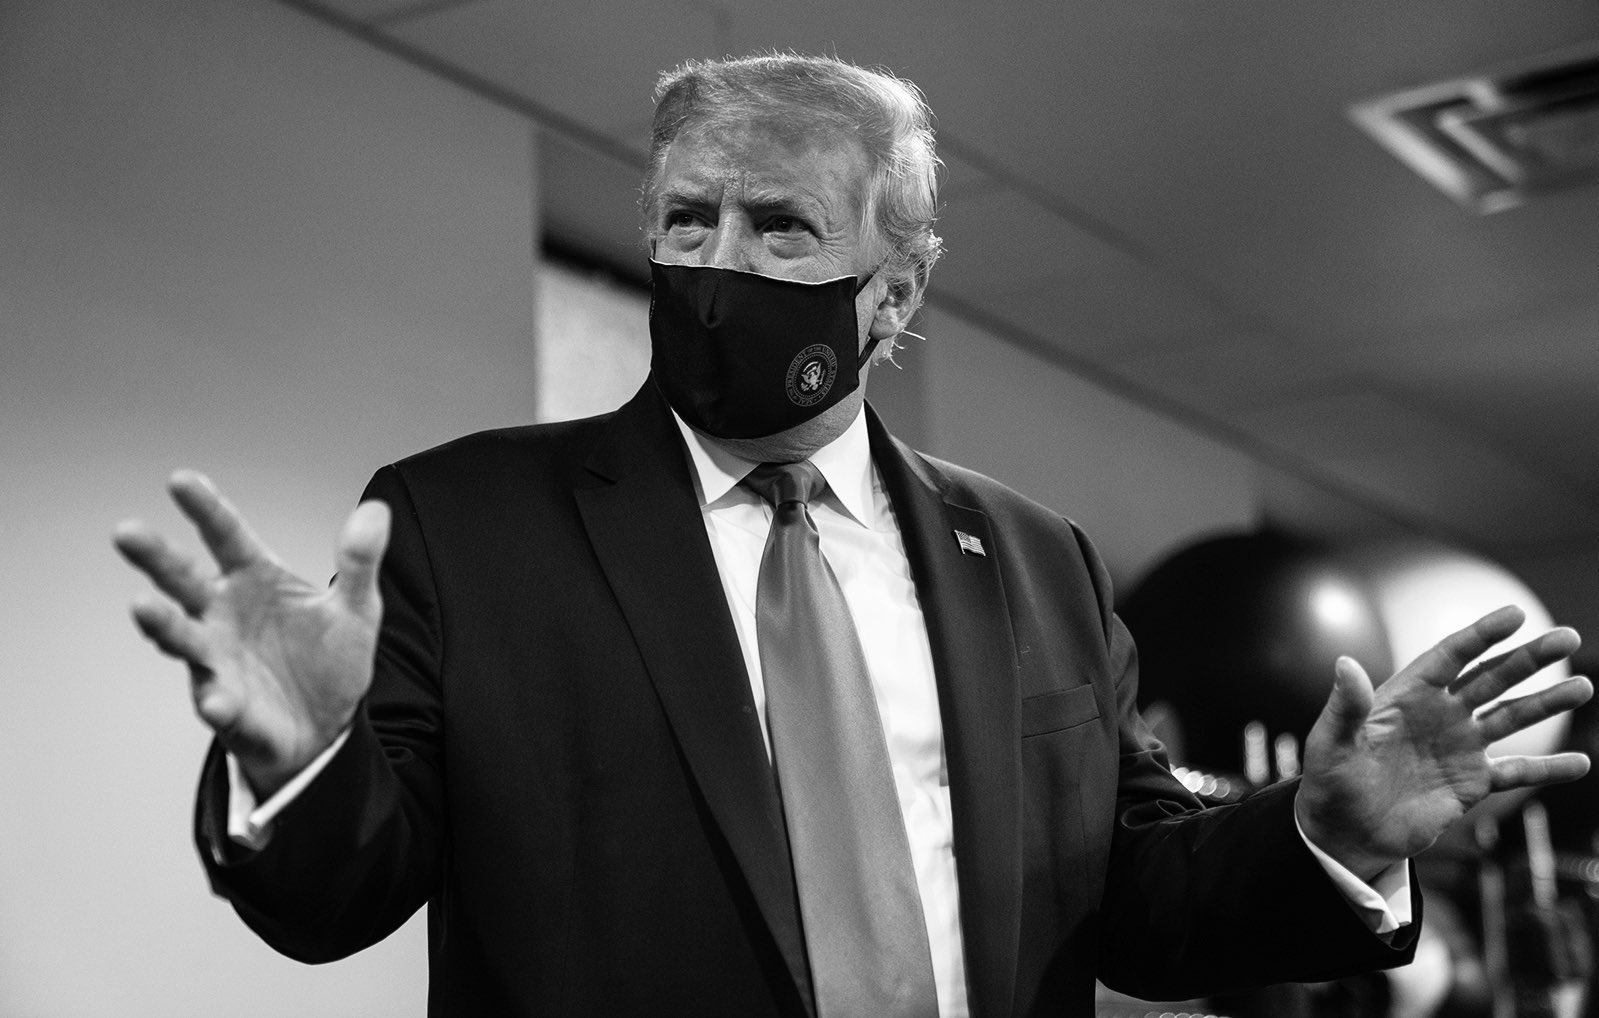 President Donald Trump tweeted this photo of himself in a mask on Monday, July 20, 2020.